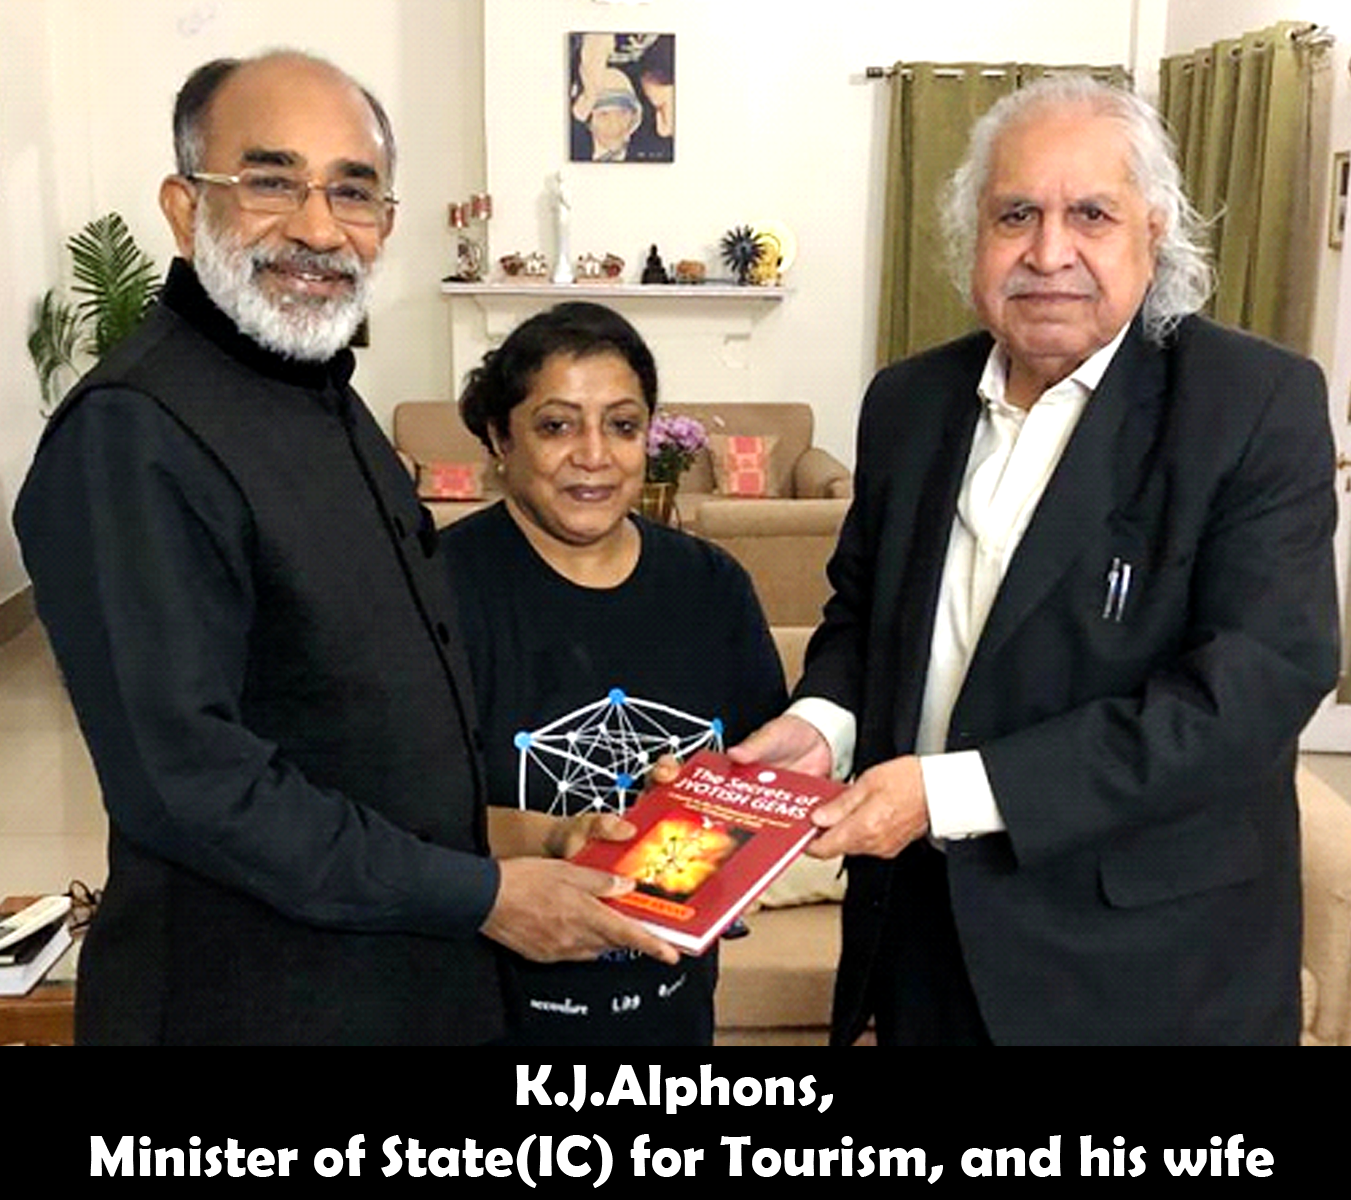 K.J.Alphons, Minister of State(IC) for Tourism releasing the secrets of Jyotish Gems